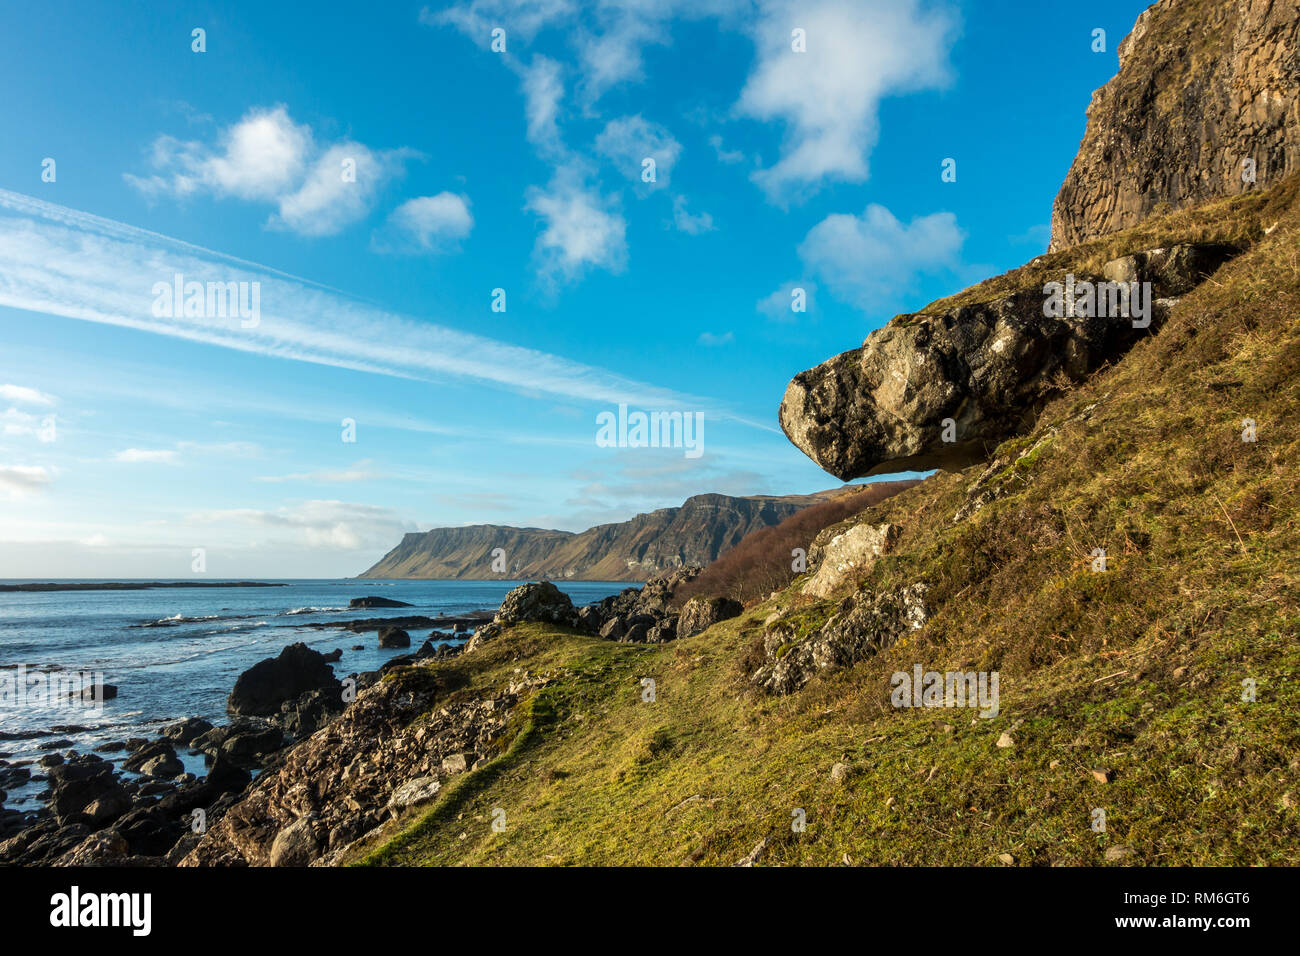 Stunning landscape view of the Carsaig cliffs on the Isle of Mull on a beautiful winter's day, Scotland - panoramic Stock Photo